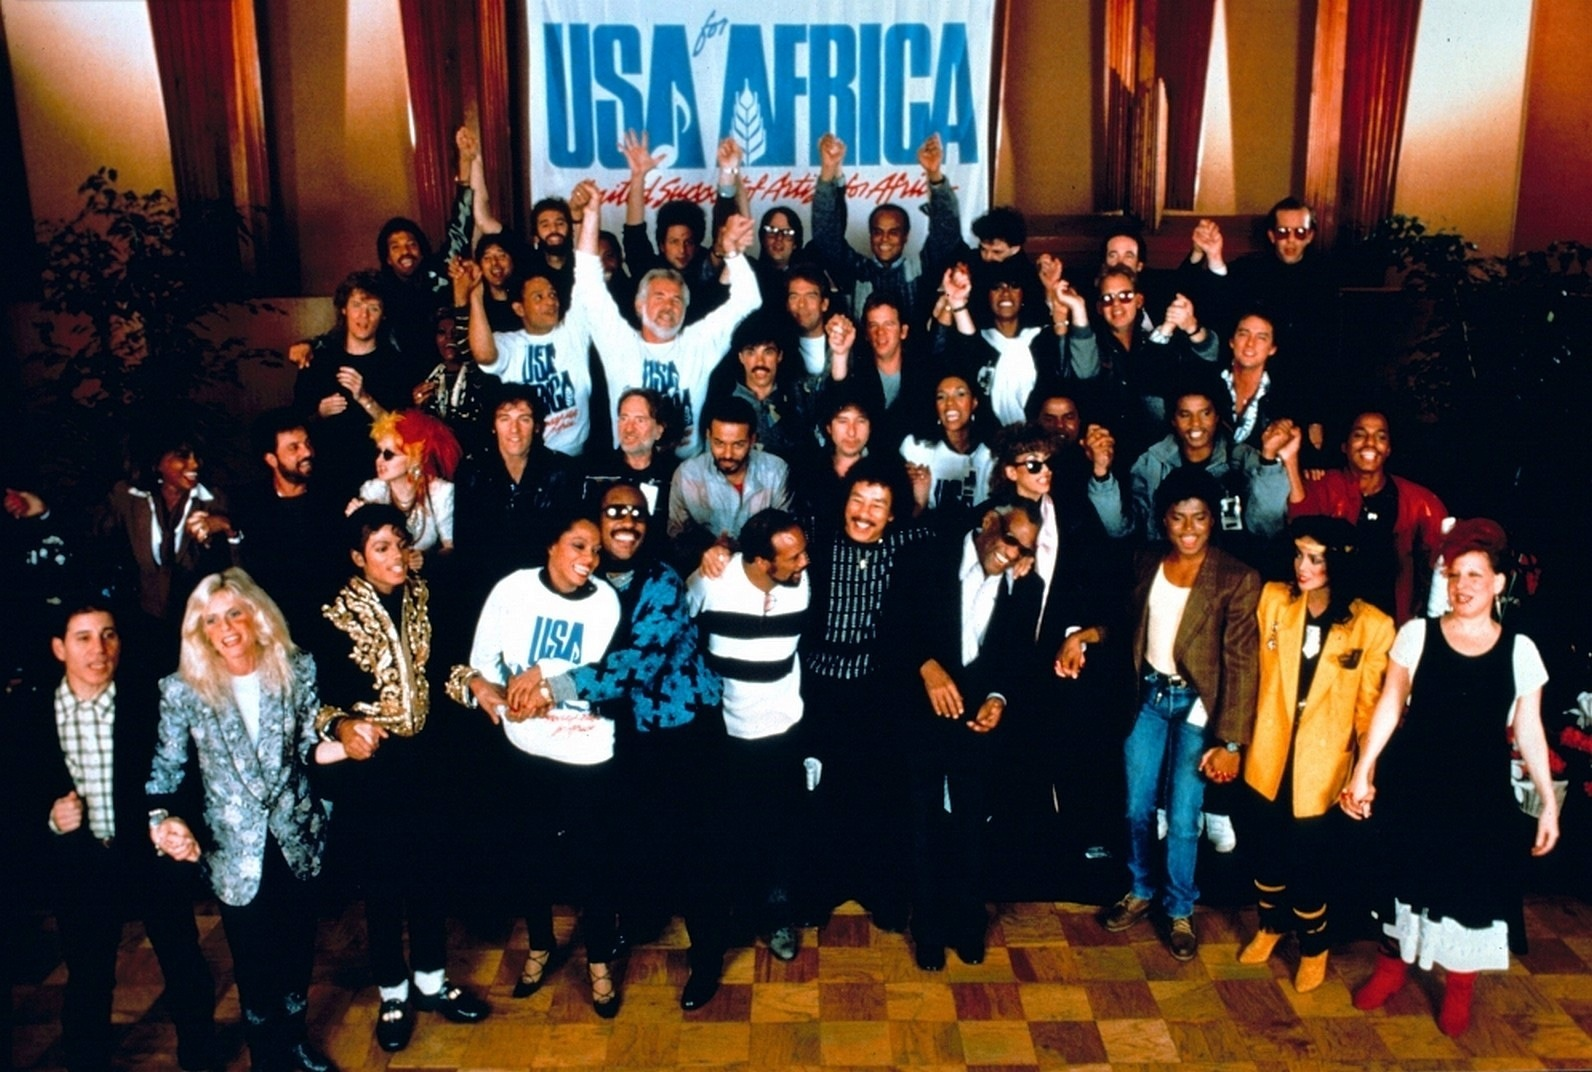 we are the world Print and download we are the world sheet music by usa for africa sheet music arranged for piano/vocal/guitar in e major (transposable) sku: mn0044490.